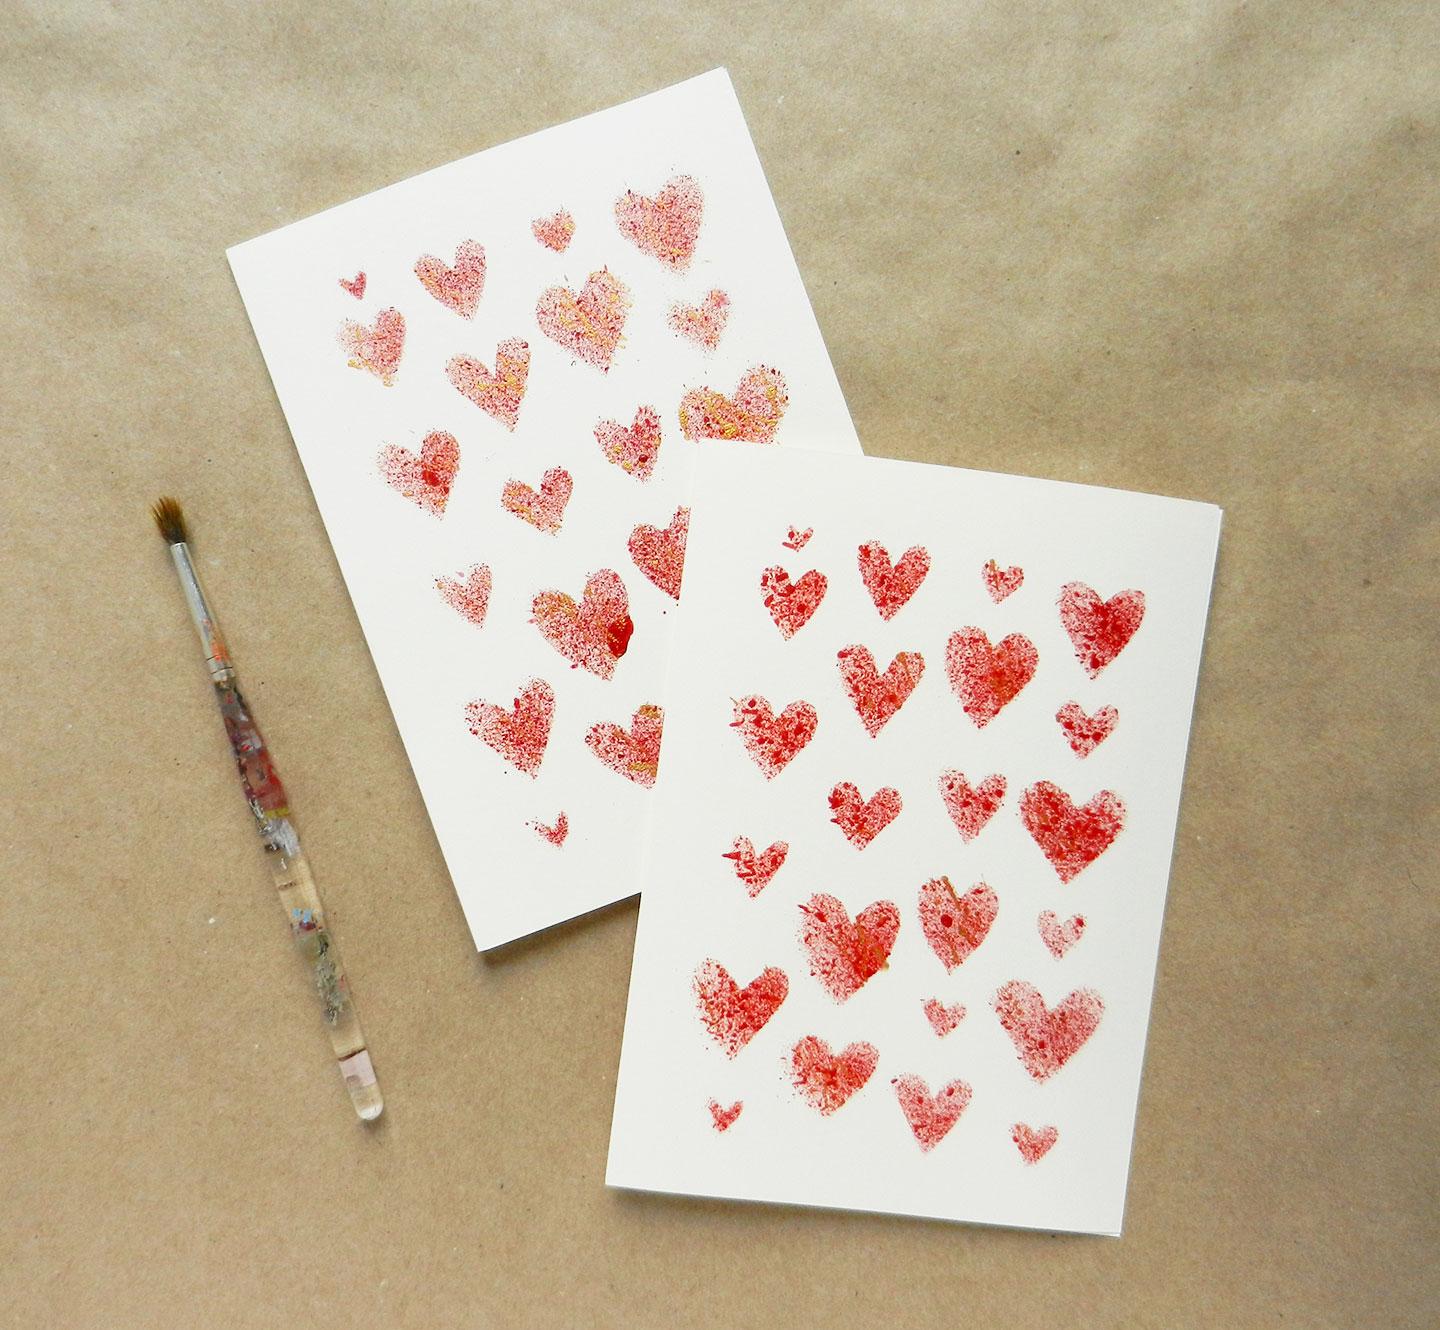 Handmade Valentines Day Card Tutorial – Card Valentine Handmade